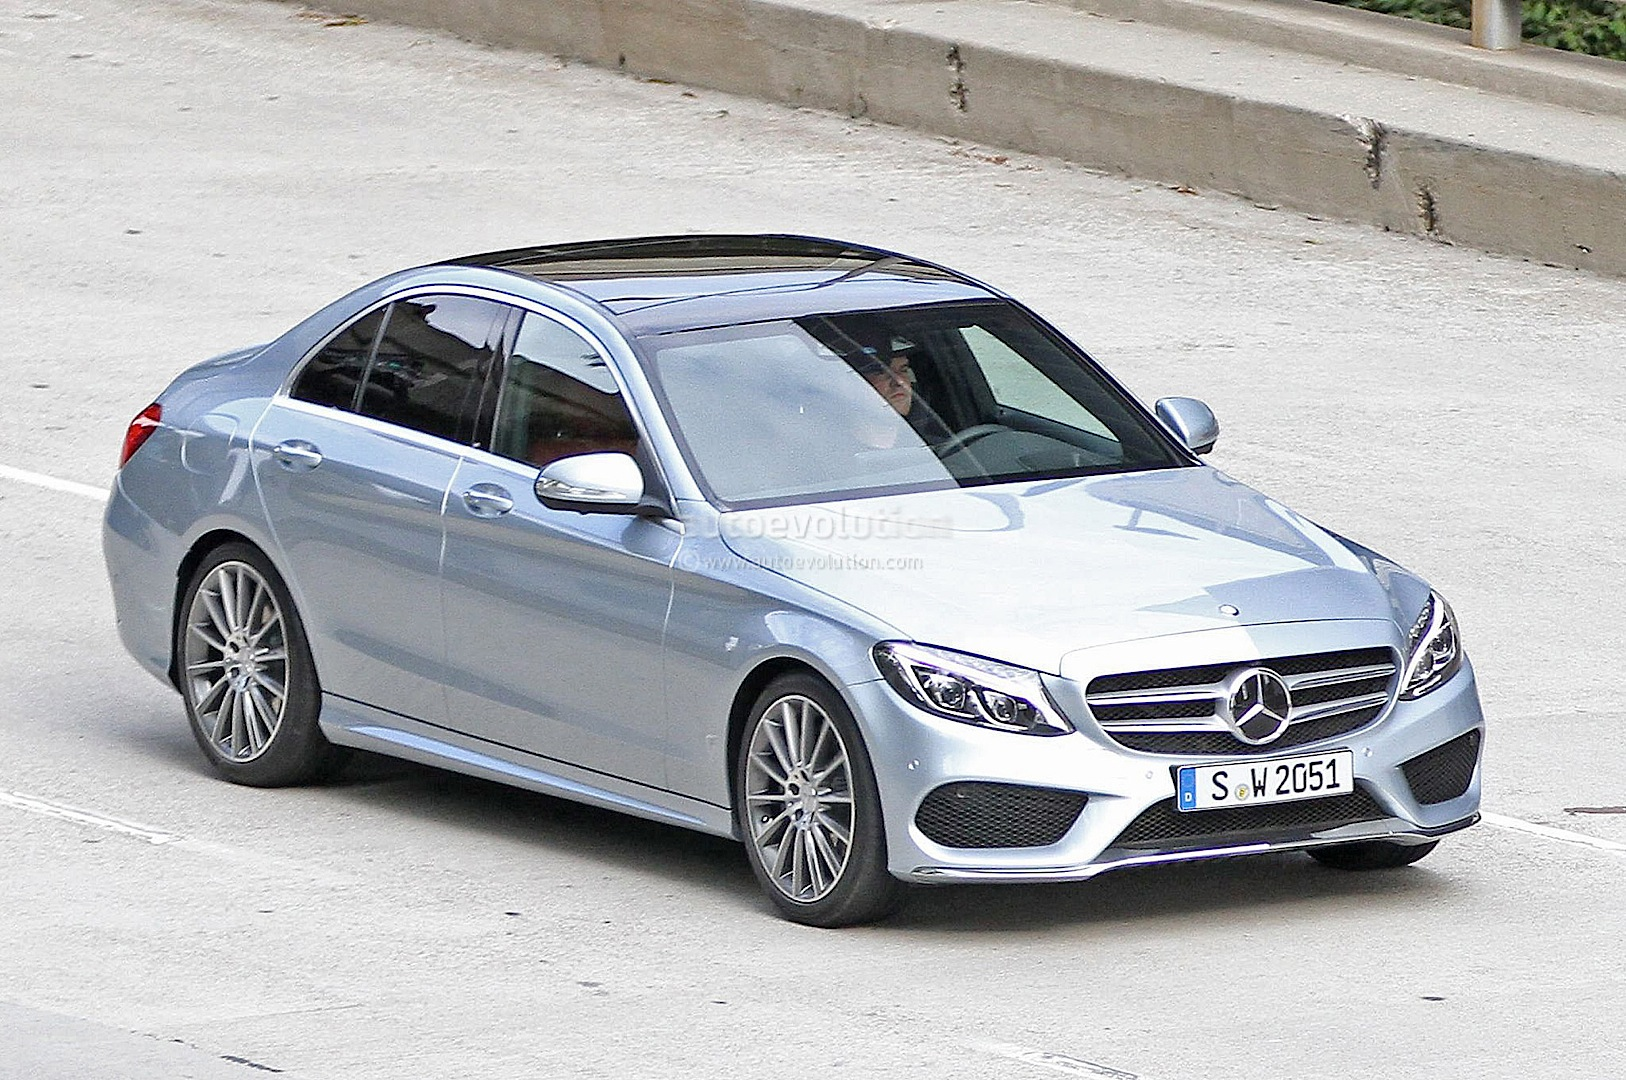 2015 mercedes benz c 180 w205 versus 2014 c 180 w204 for 2015 mercedes benz ml